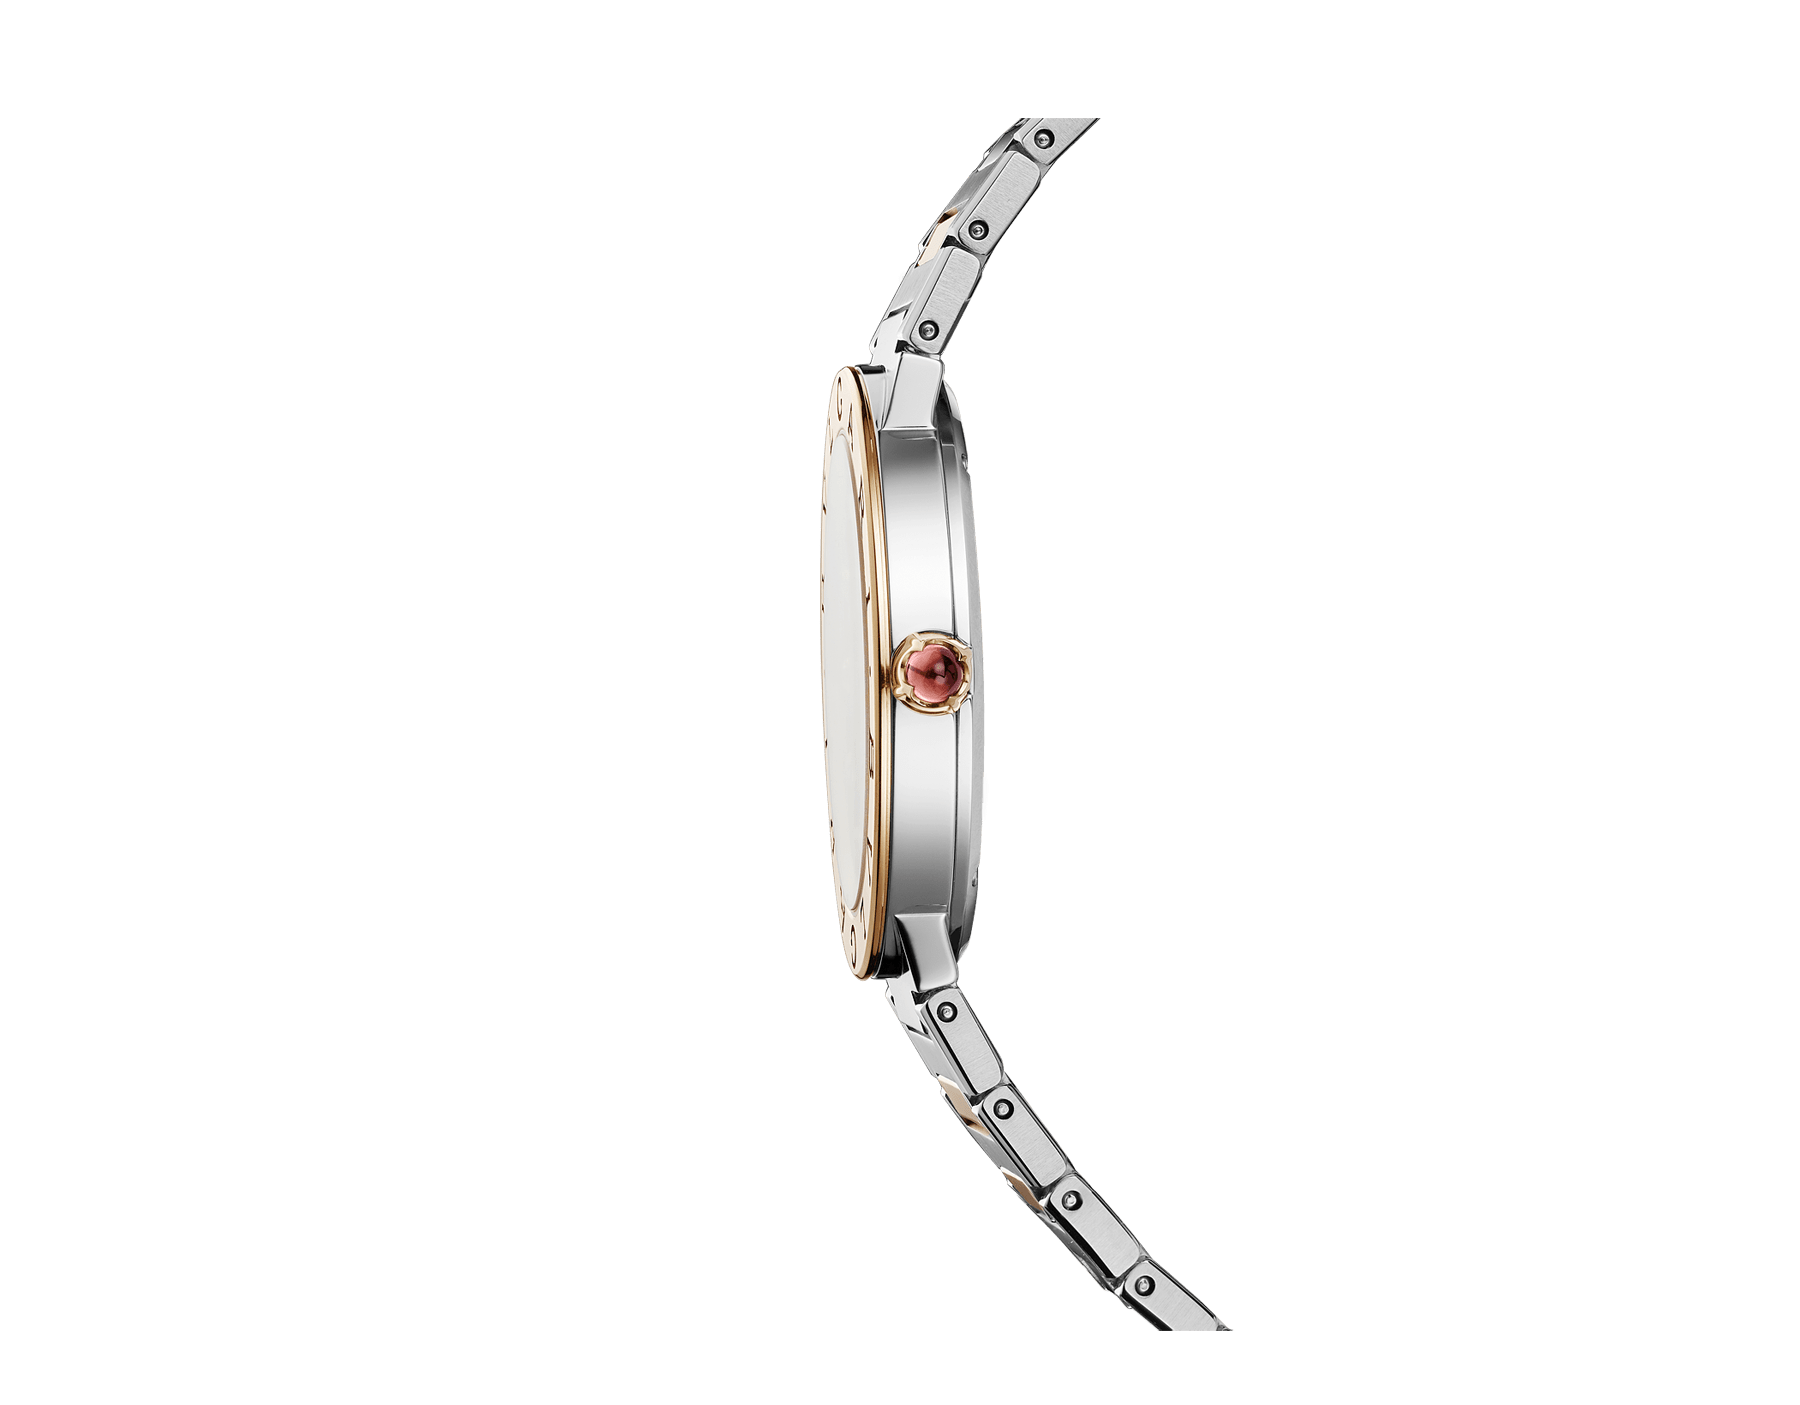 BVLGARI BVLGARI LADY watch with stainless steel case, 18 kt rose gold bezel engraved with double logo, gray lacquered dial, diamond indexes, and stainless steel and 18 kt rose gold bracelet. 103067 image 3